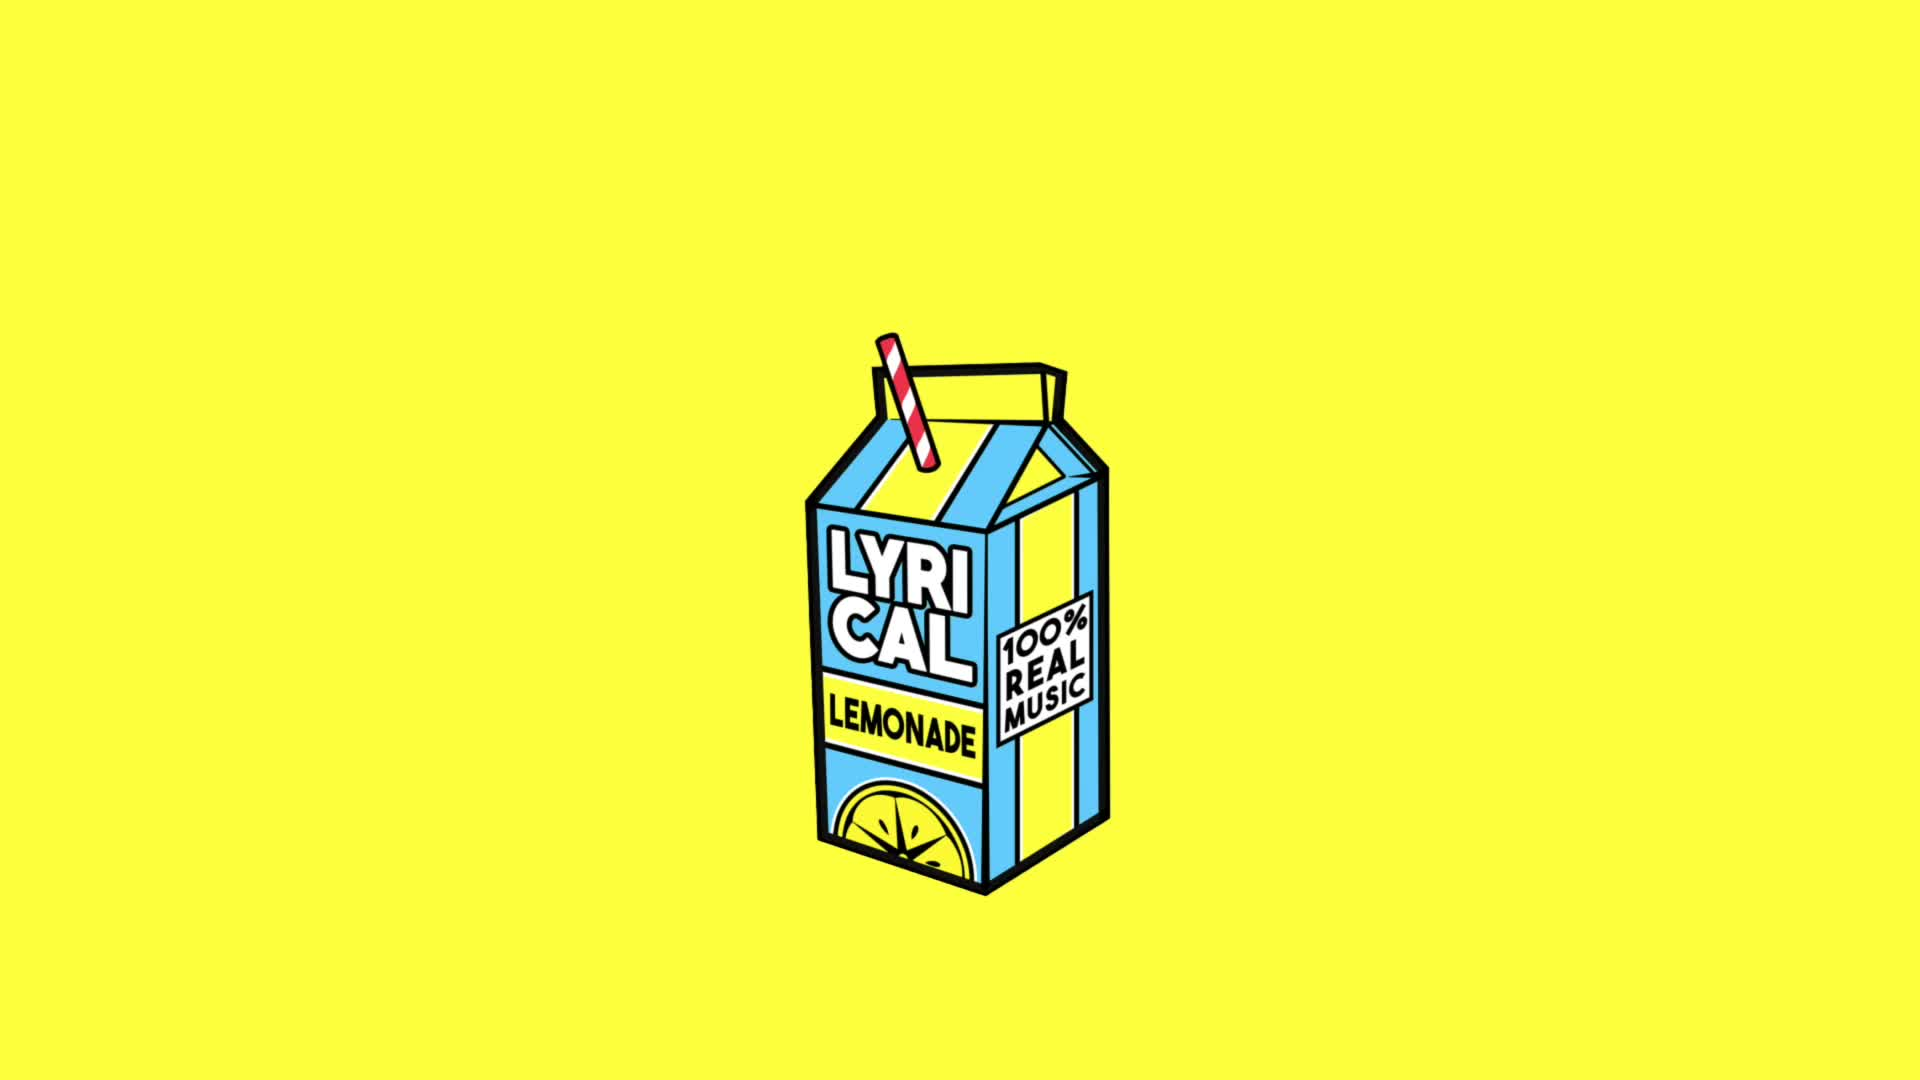 Lyrical Lemonade Wallpapers - Wallpaper Cave